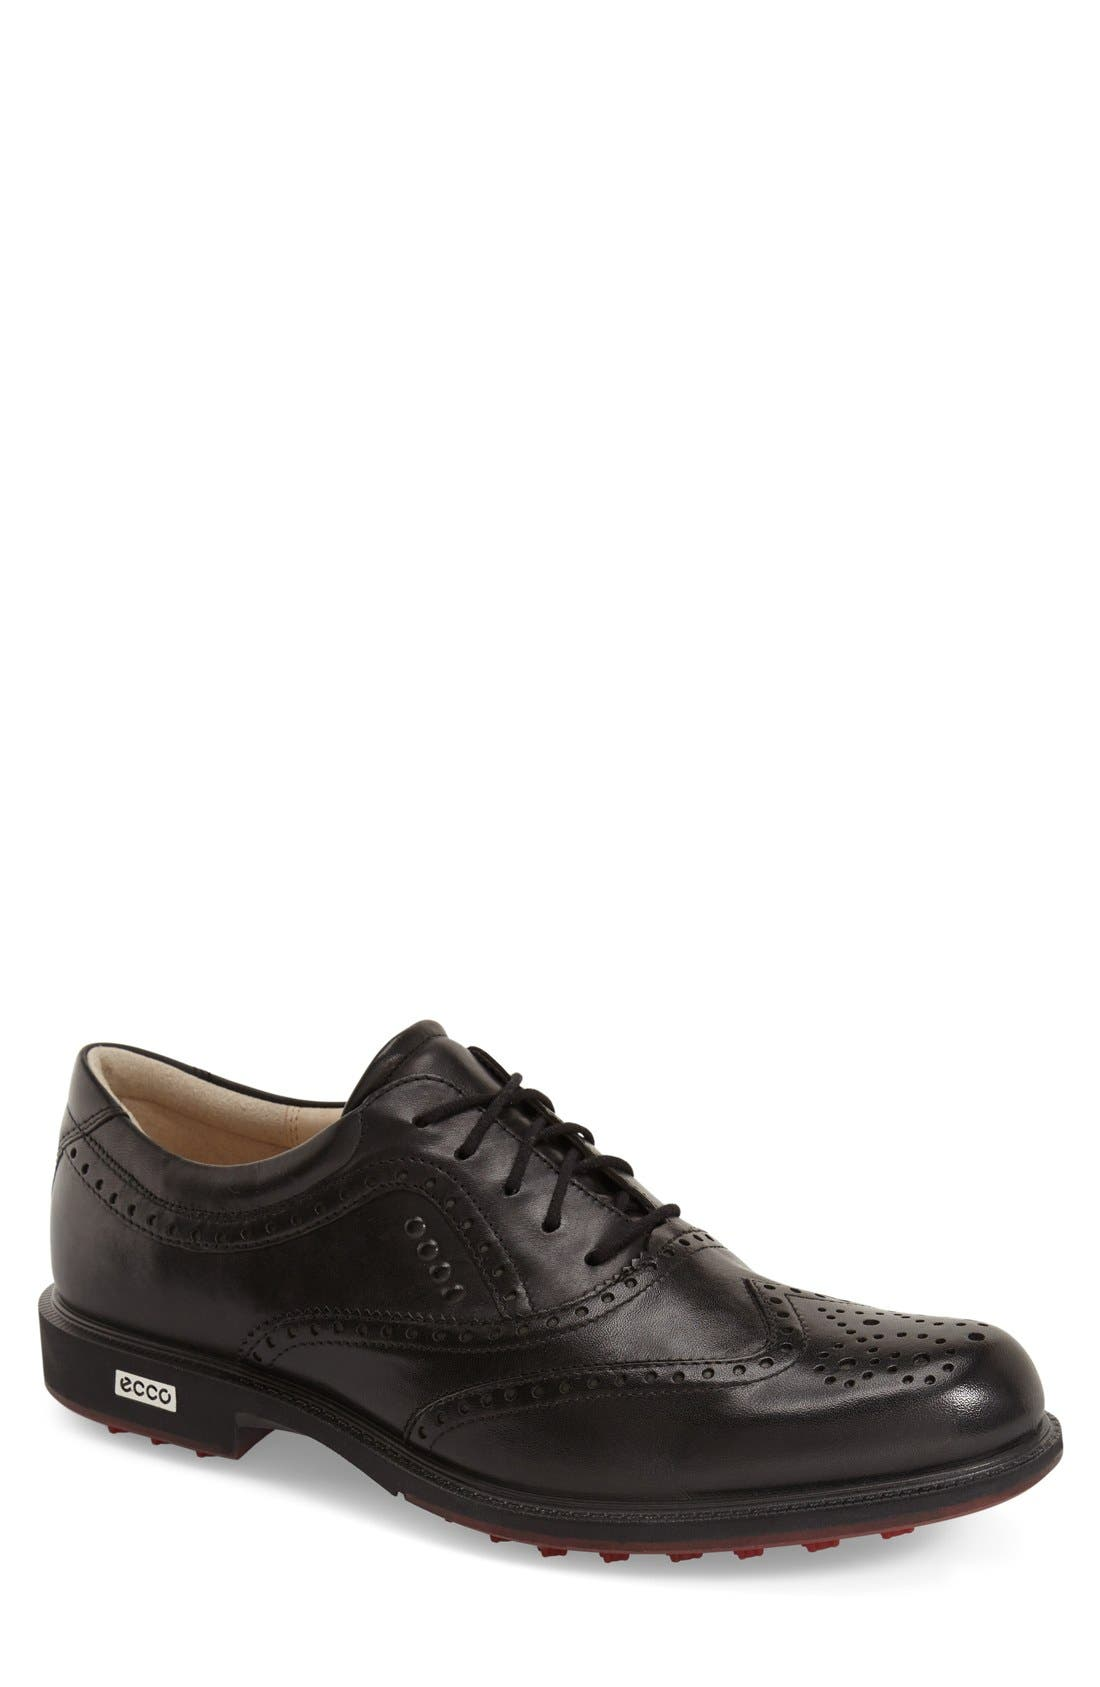 ecco tour hybrid wingtip golf shoe nordstrom